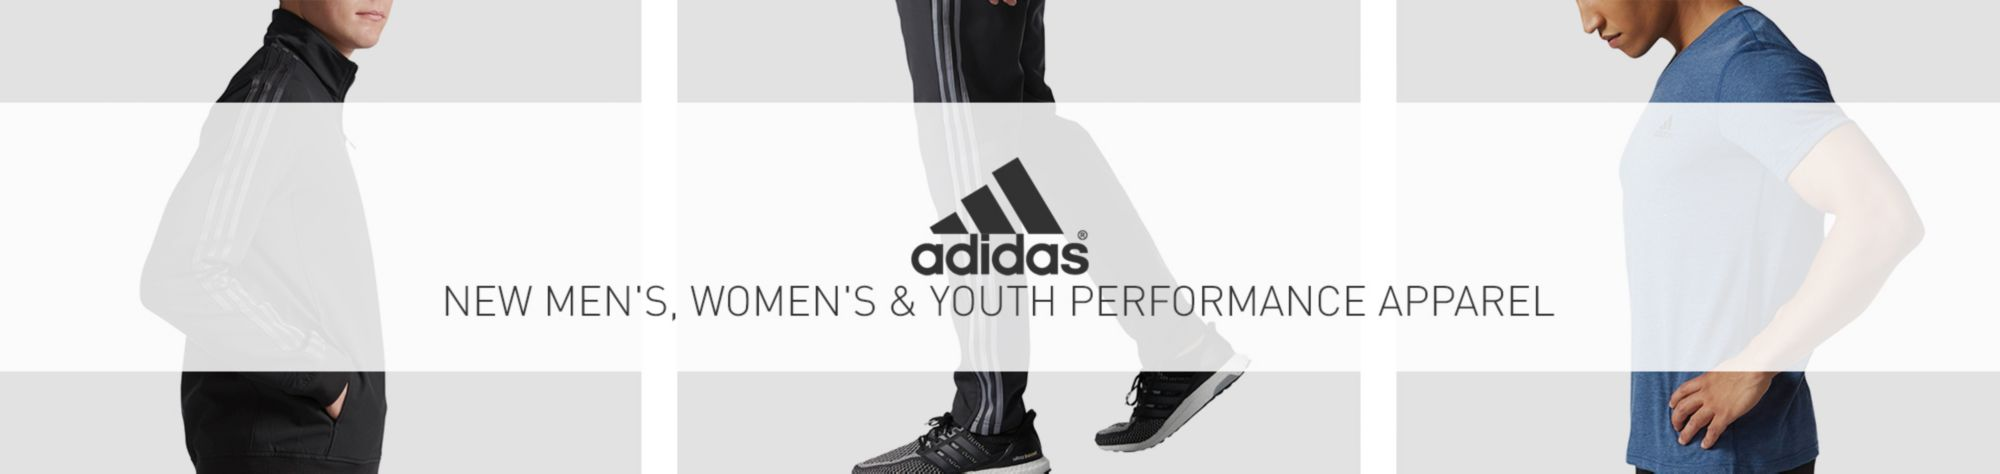 New Adidas Performance Apparel